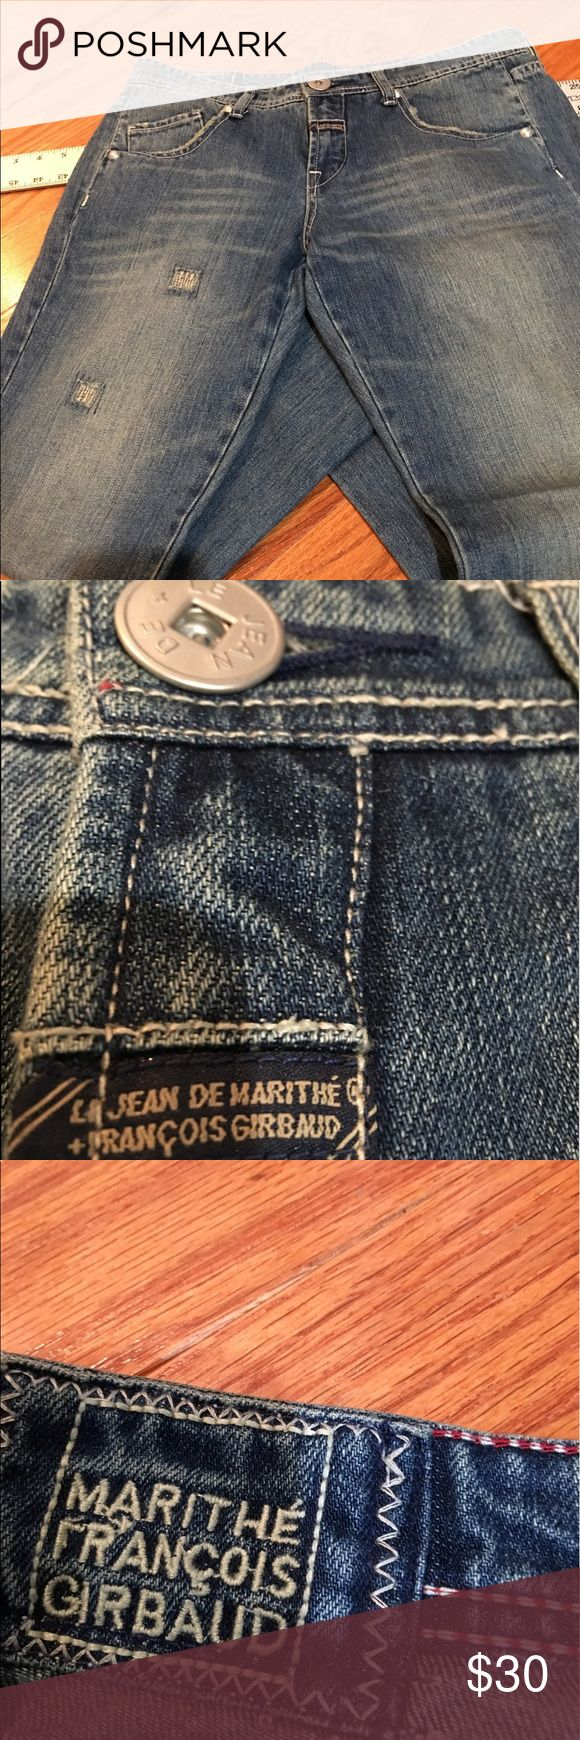 New Marithe Francois Girbaud New De Le Jeans, size 29.  Distressed Look. Bought/removed tags/never wore.  Smoke Free Owner/Home. Marithe Francois Girbaud Jeans